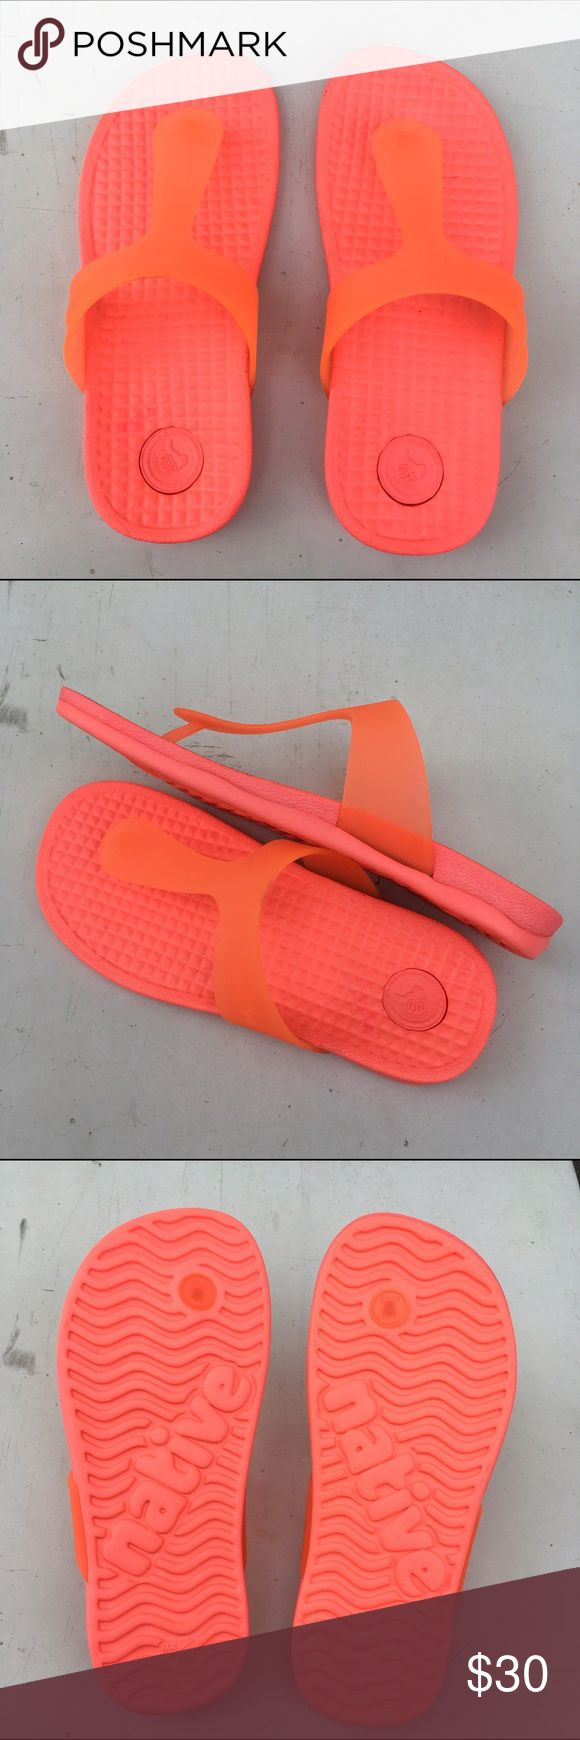 Native brand Blanca sandal in popstar orange Very comfortable sandal in fun neon orange. Shock absorbent material easy to walk on, good for everyday walking and beach day outing! Brand new w/o tag. Native Shoes Sandals